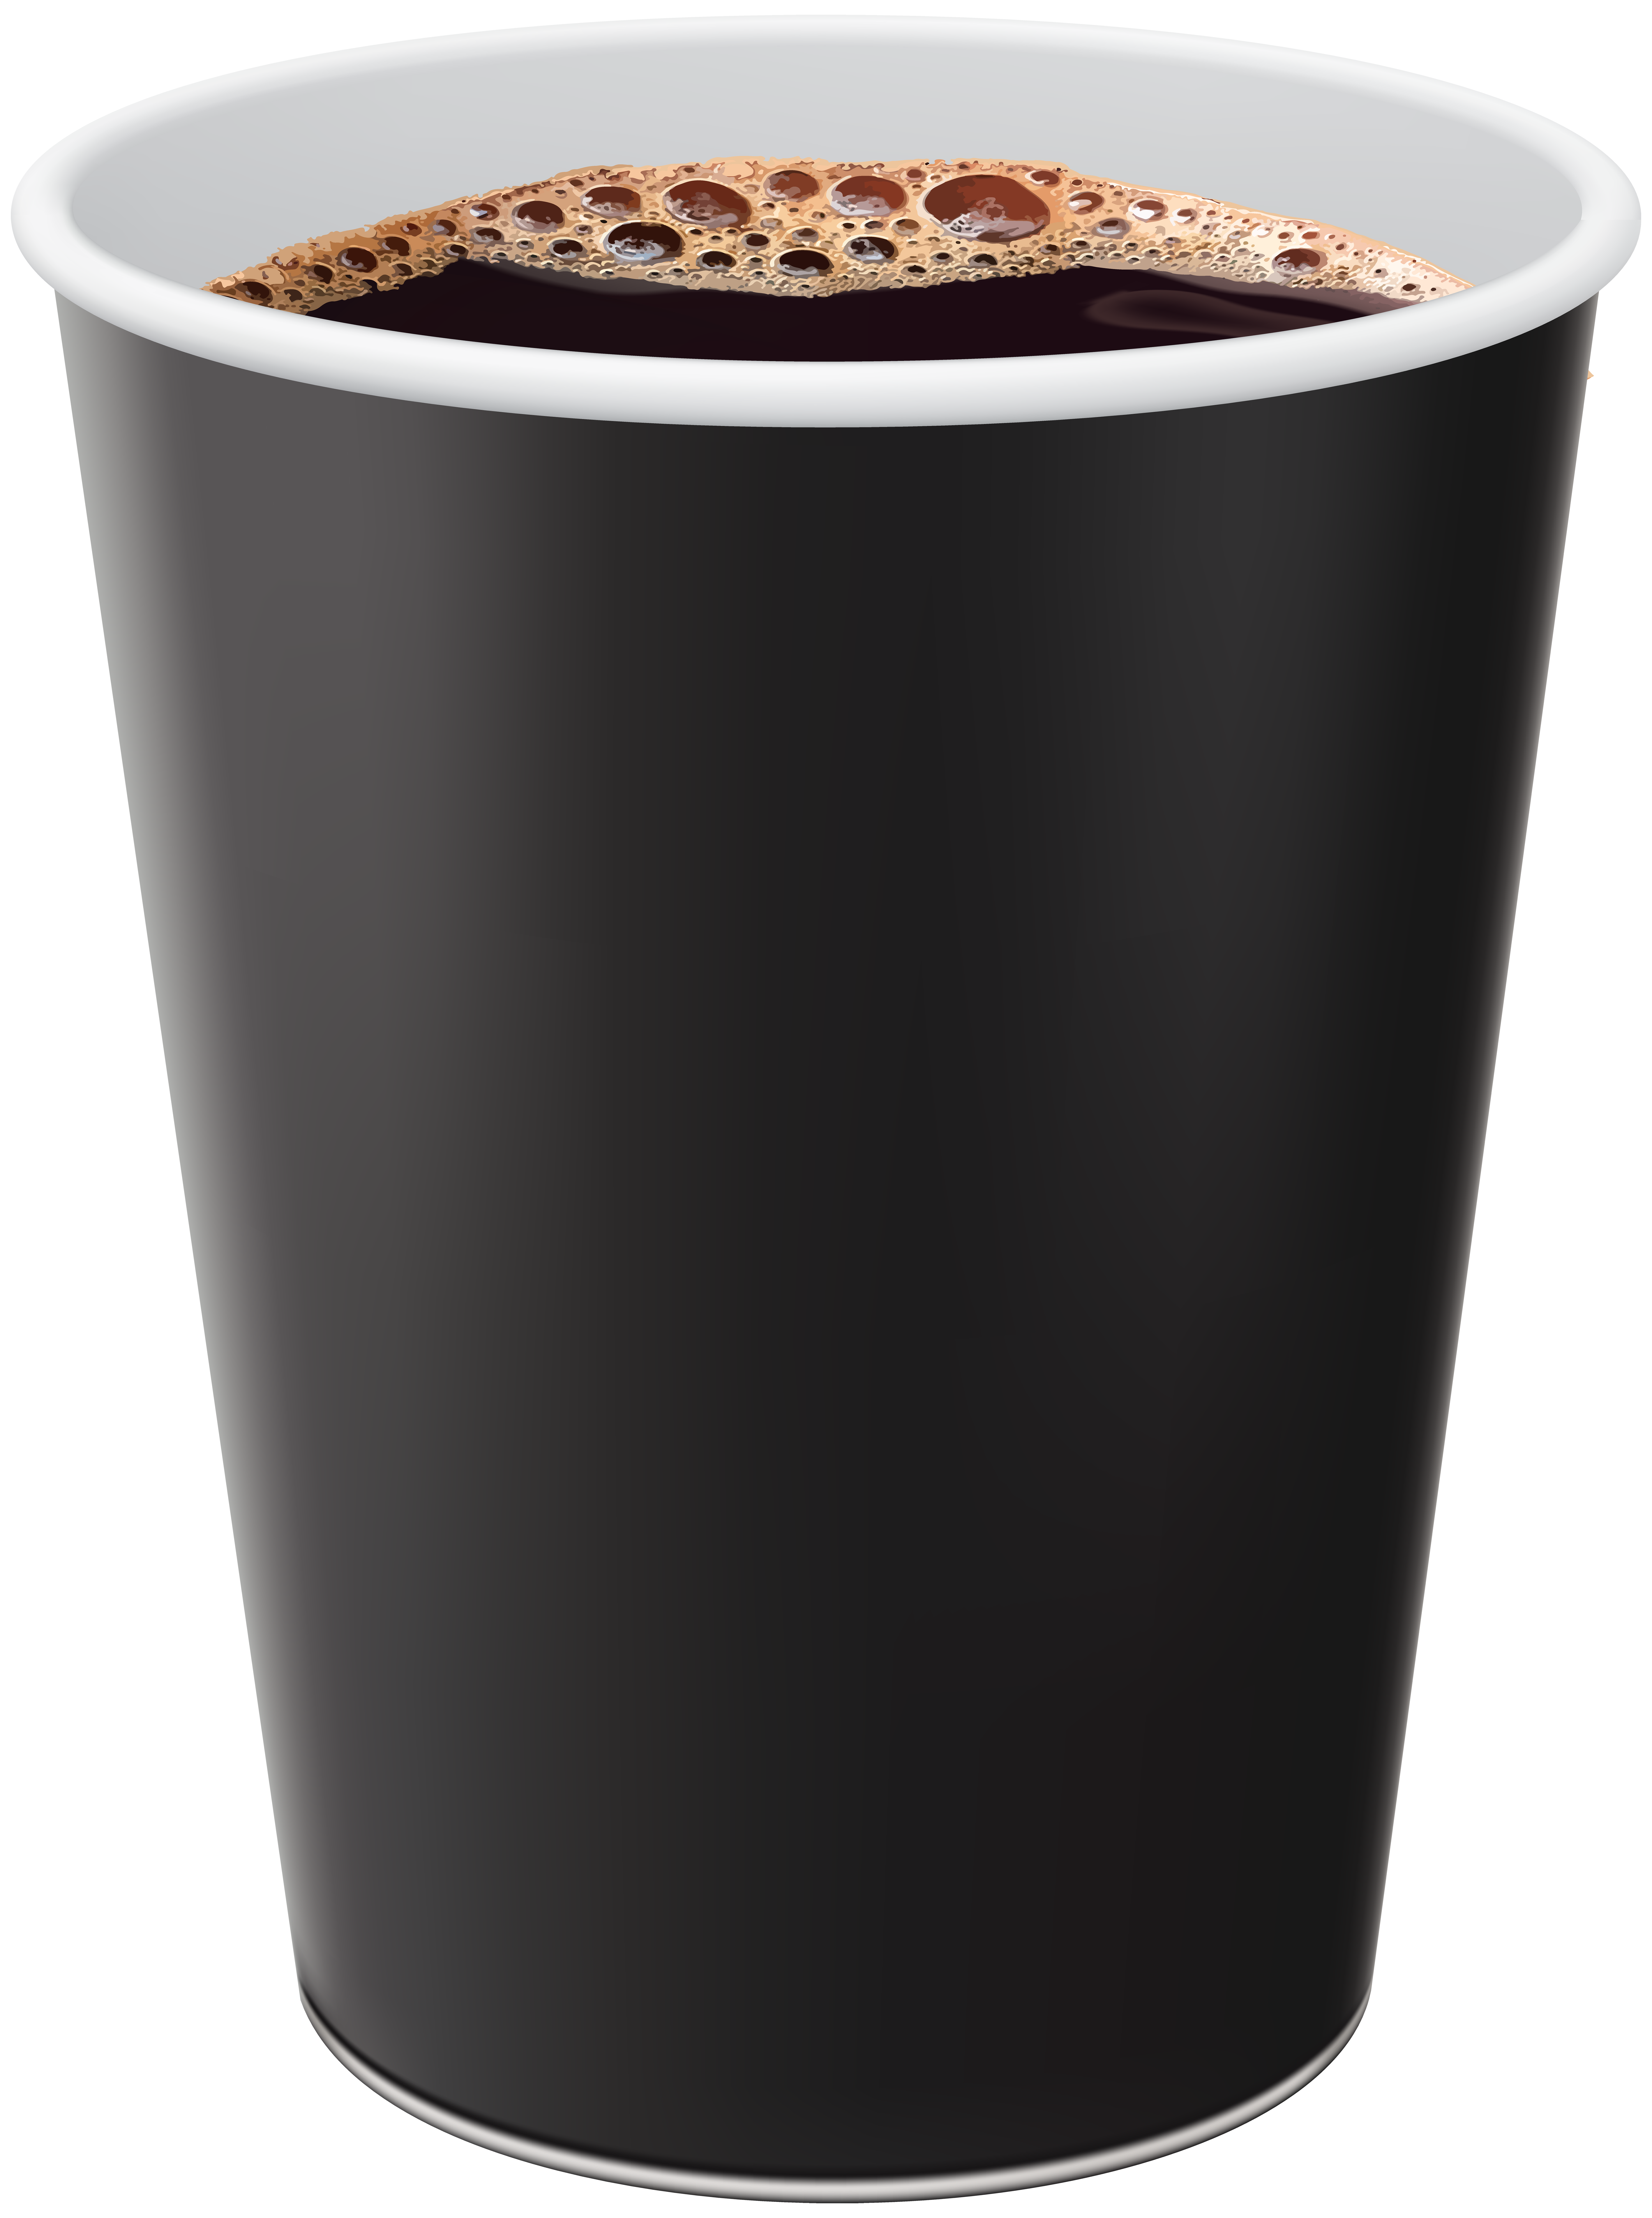 free Latte espresso cafe takeaway. Coffee cup clipart png